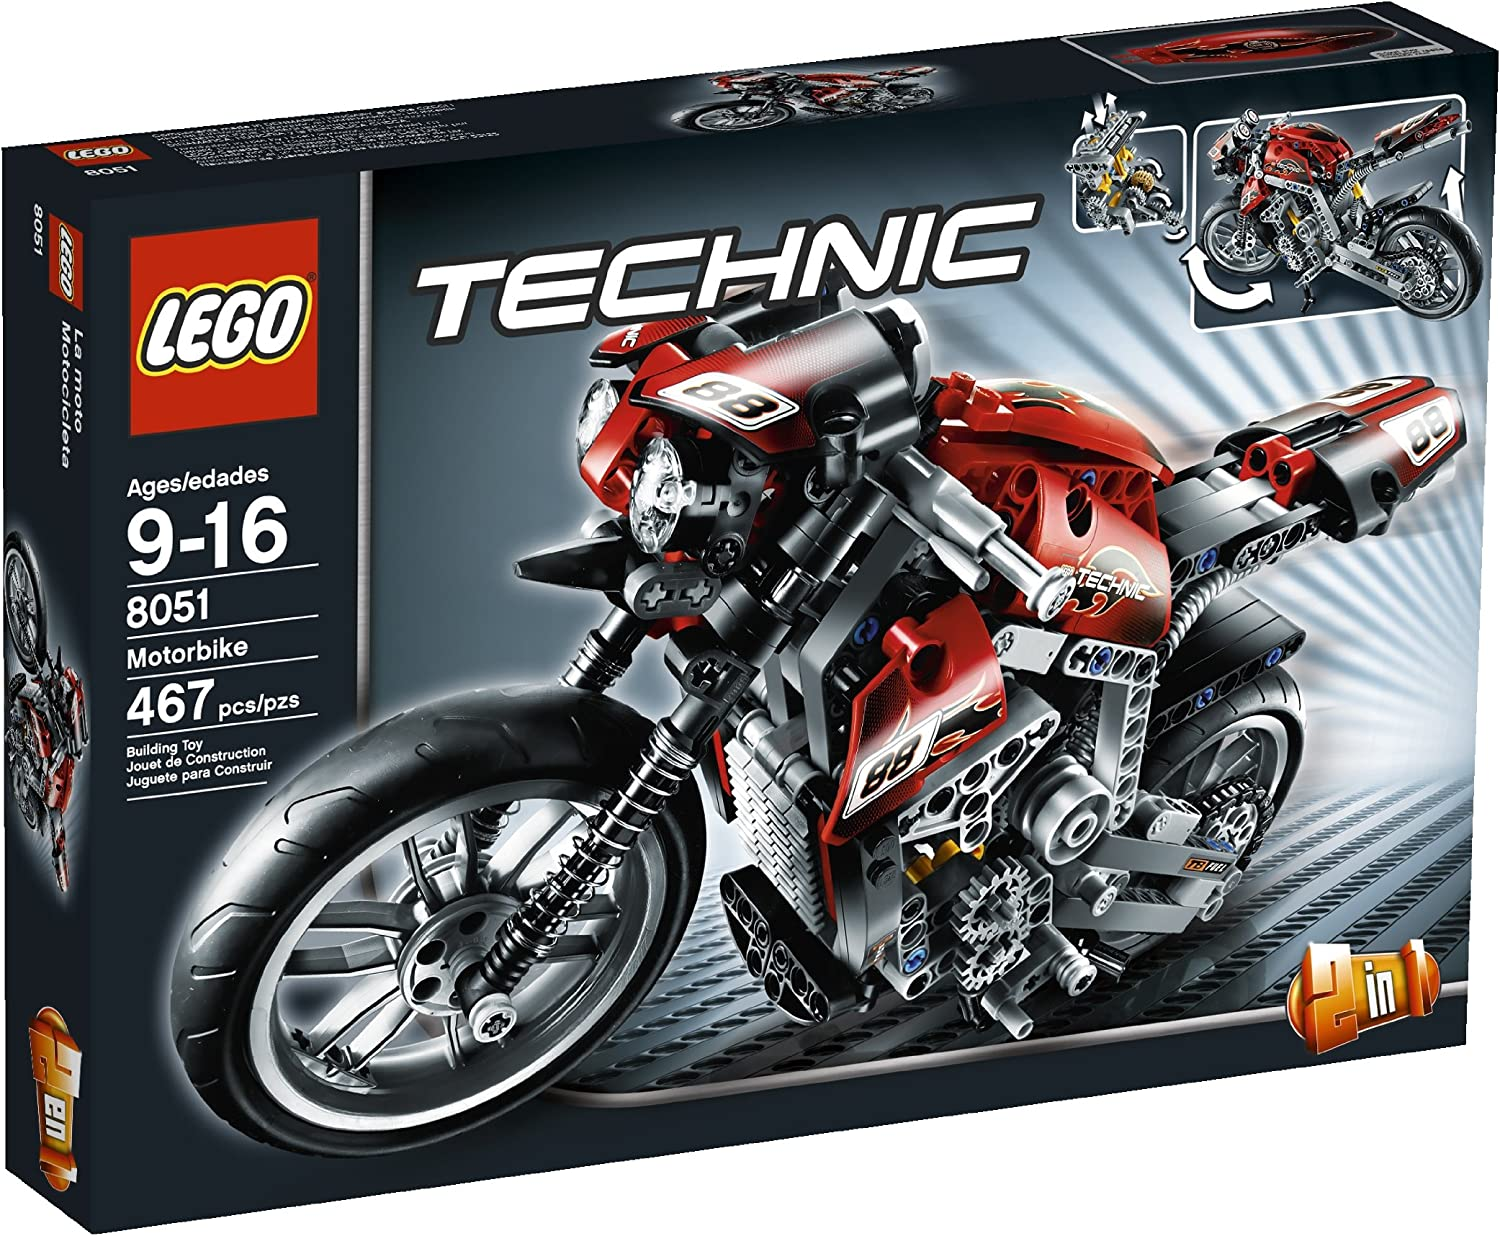 Top 7 Best LEGO Motorcycle Sets Reviews in 2020 2